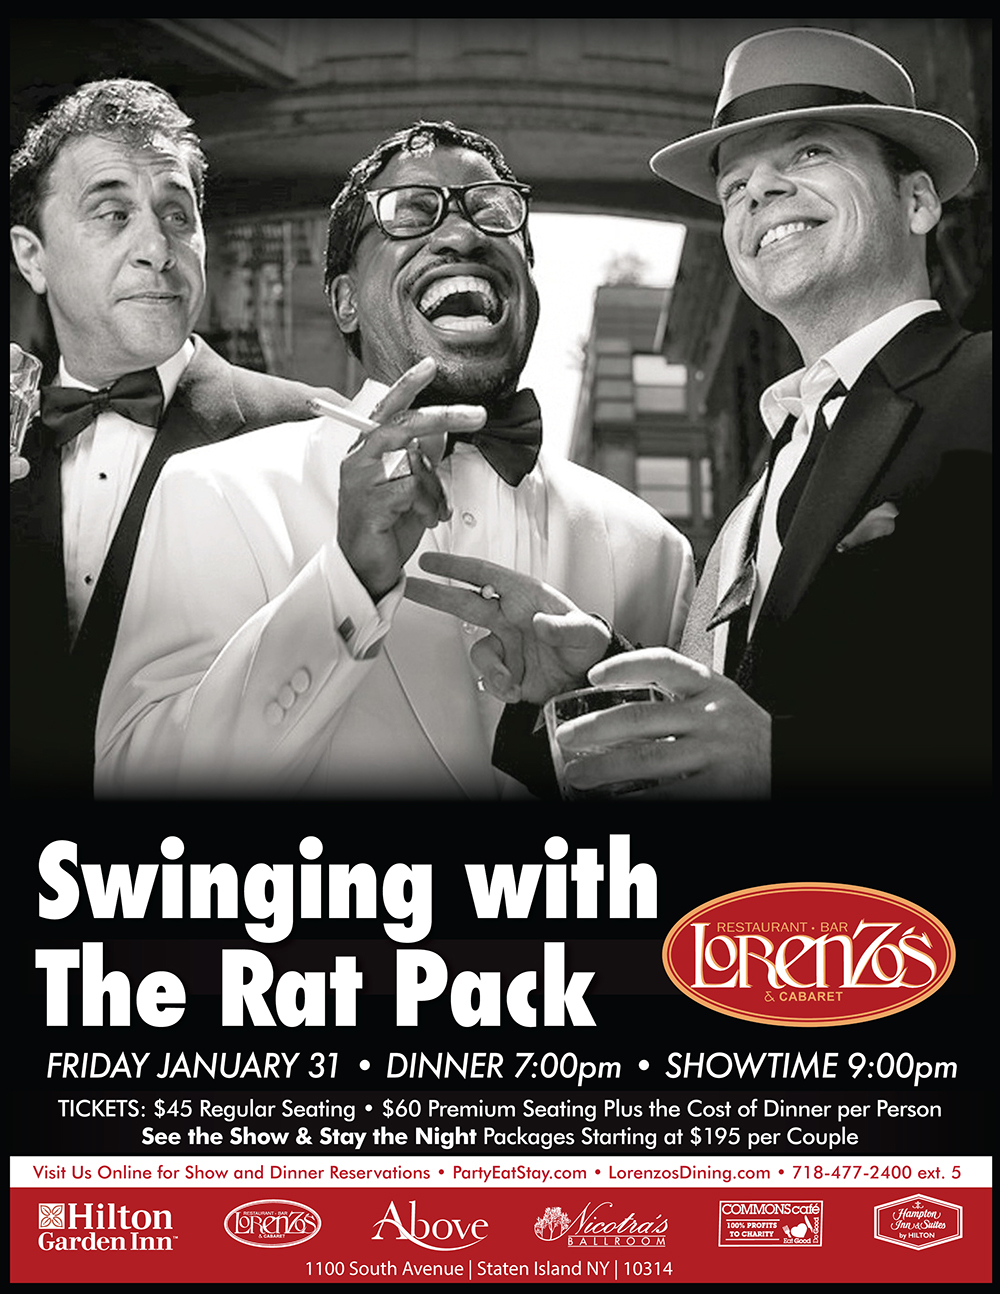 Swingin' With The Rat Pack